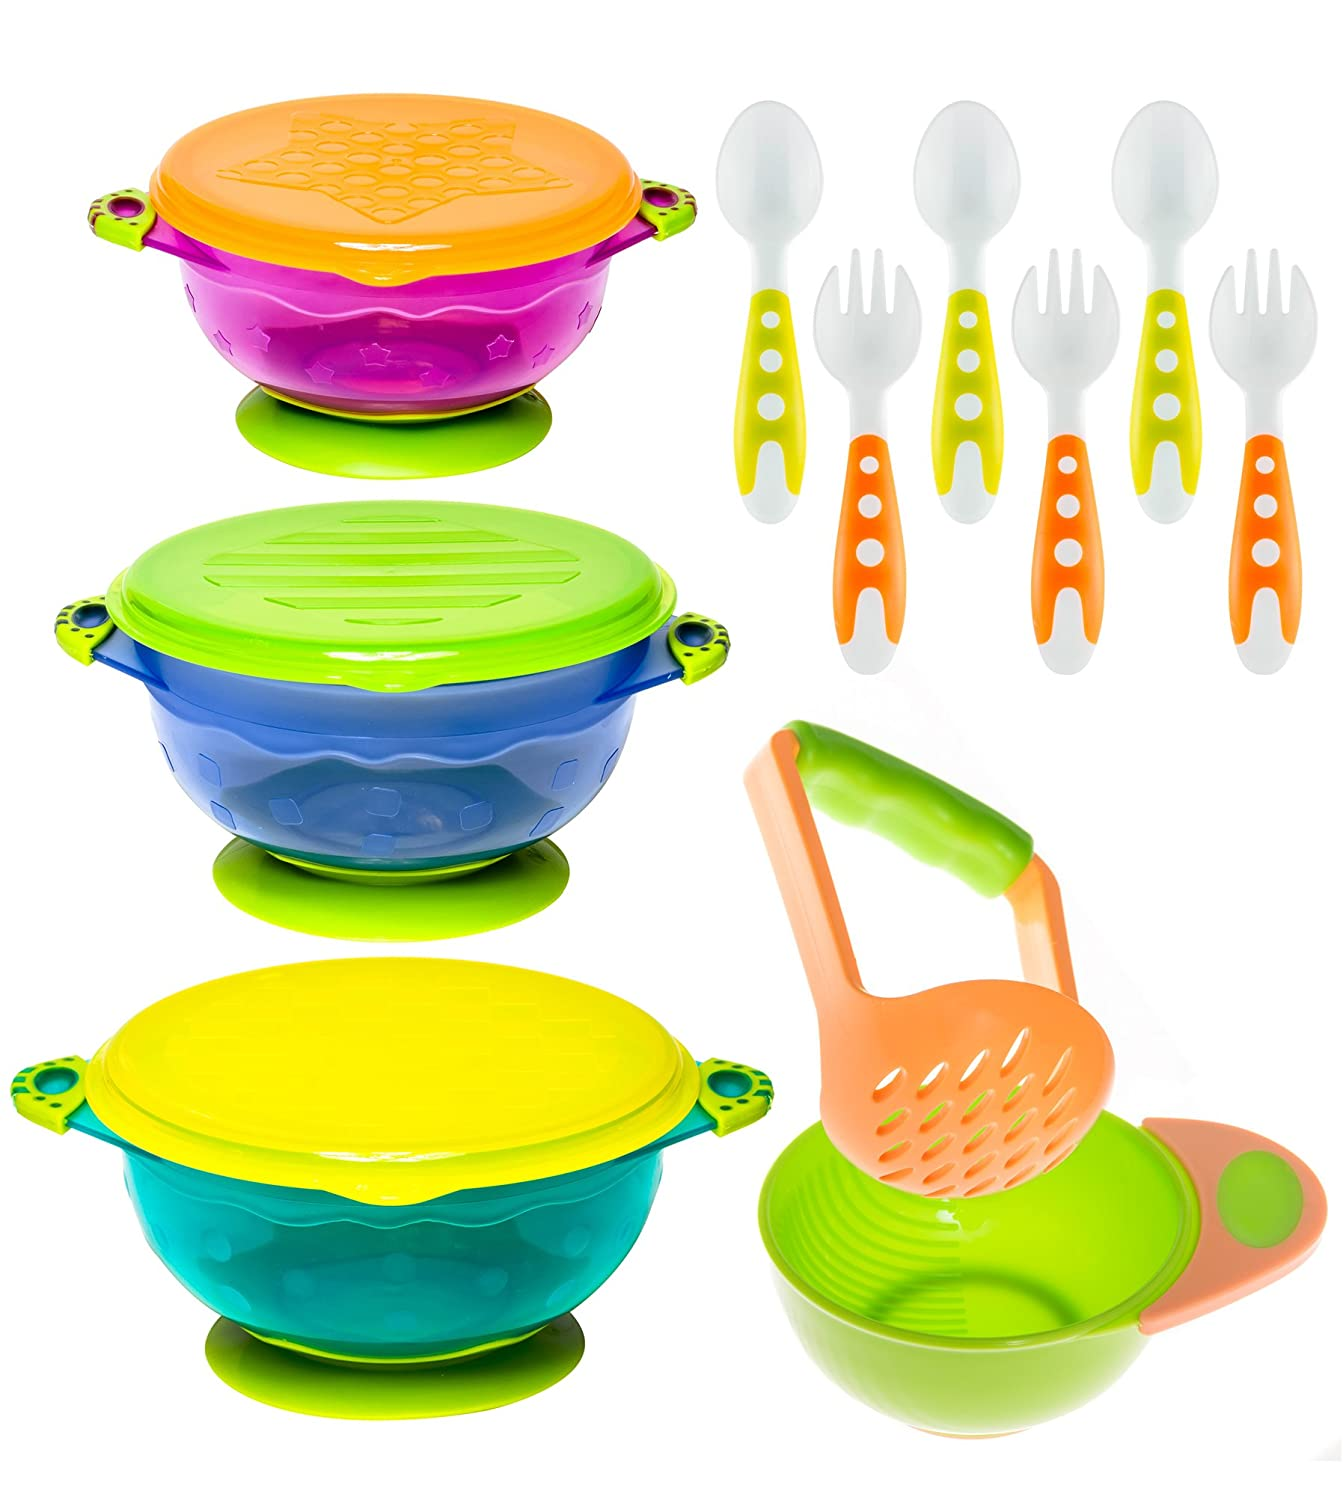 9 Best Baby Bowls and Plates Reviews in 2021 Parent Should Choose 11